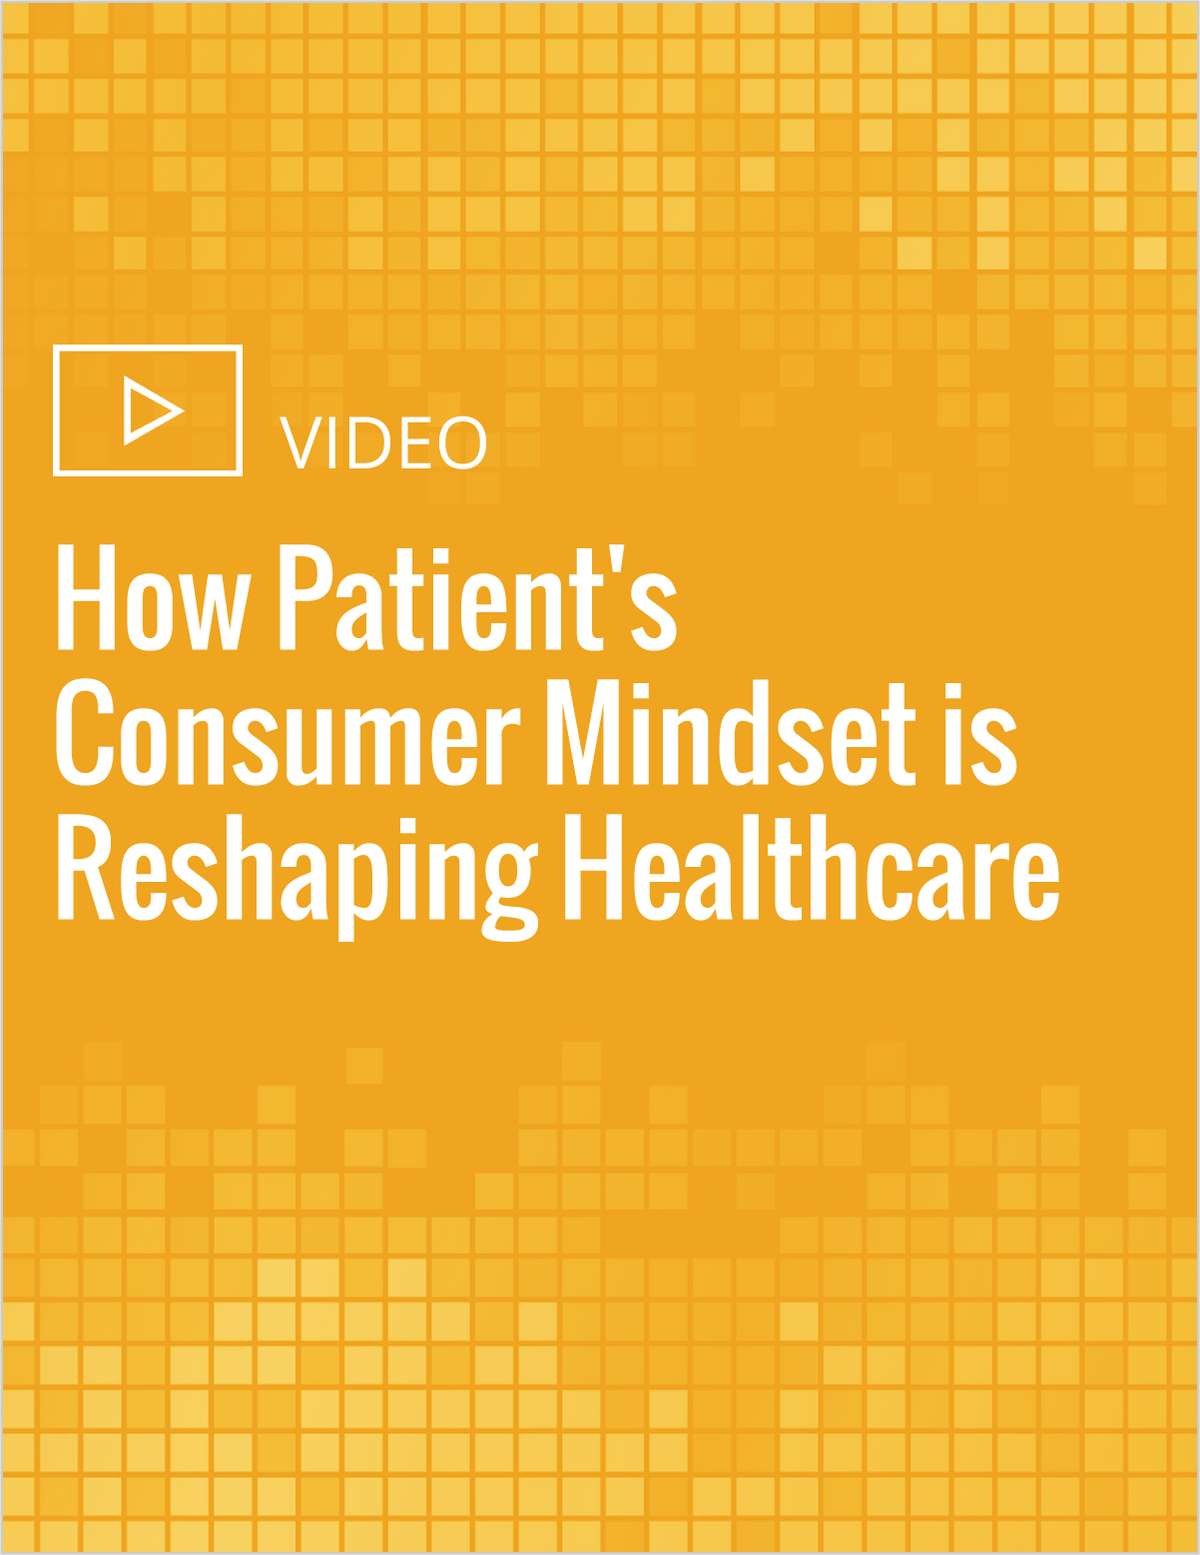 How Patient's Consumer Mindset is Reshaping Healthcare